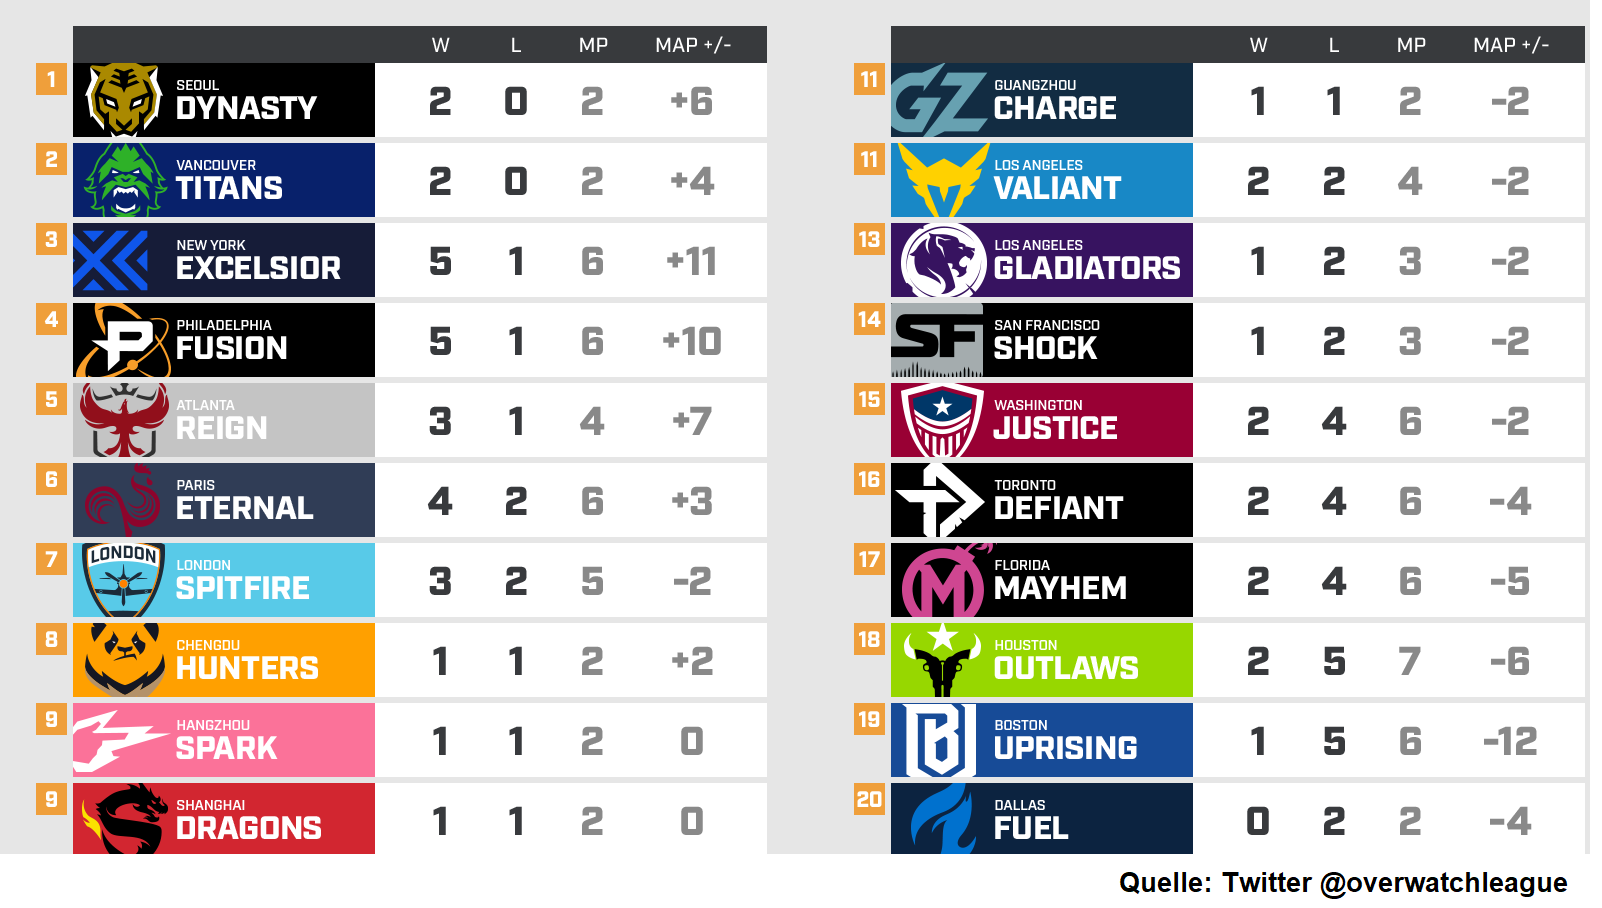 Lcs Tabelle 2020